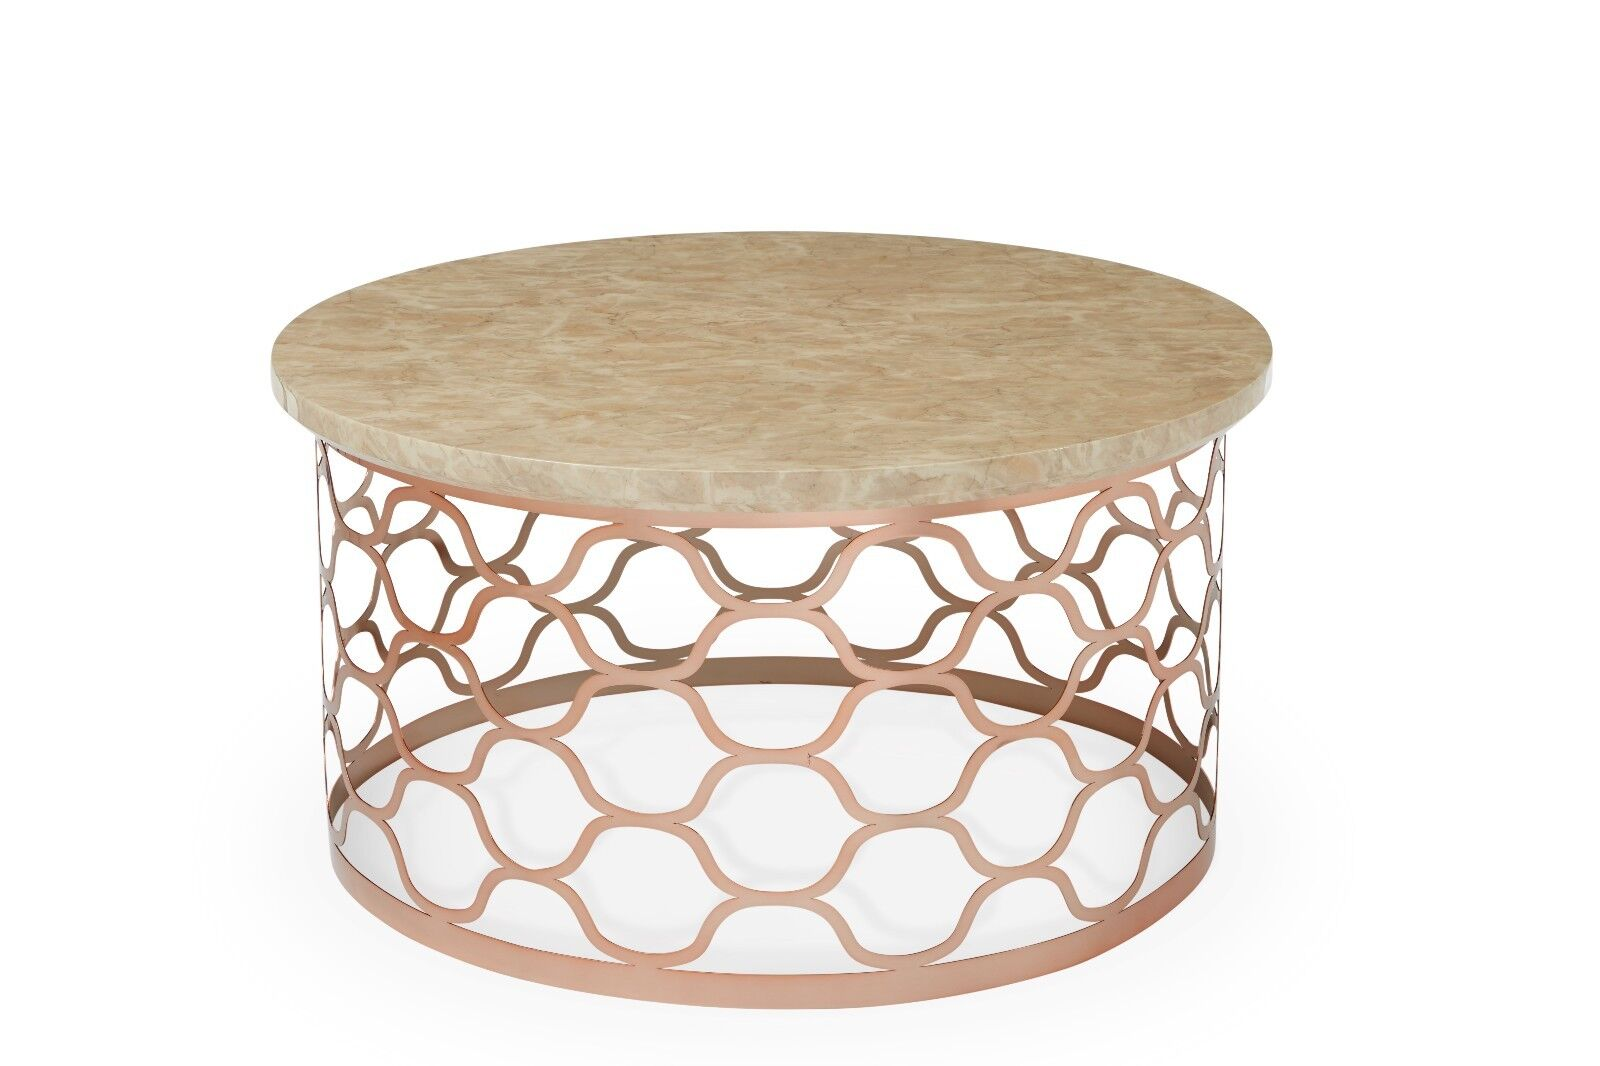 Lucille Round Coffee Table Replica Marble Rose Gold Metal Base Honeycomb Design